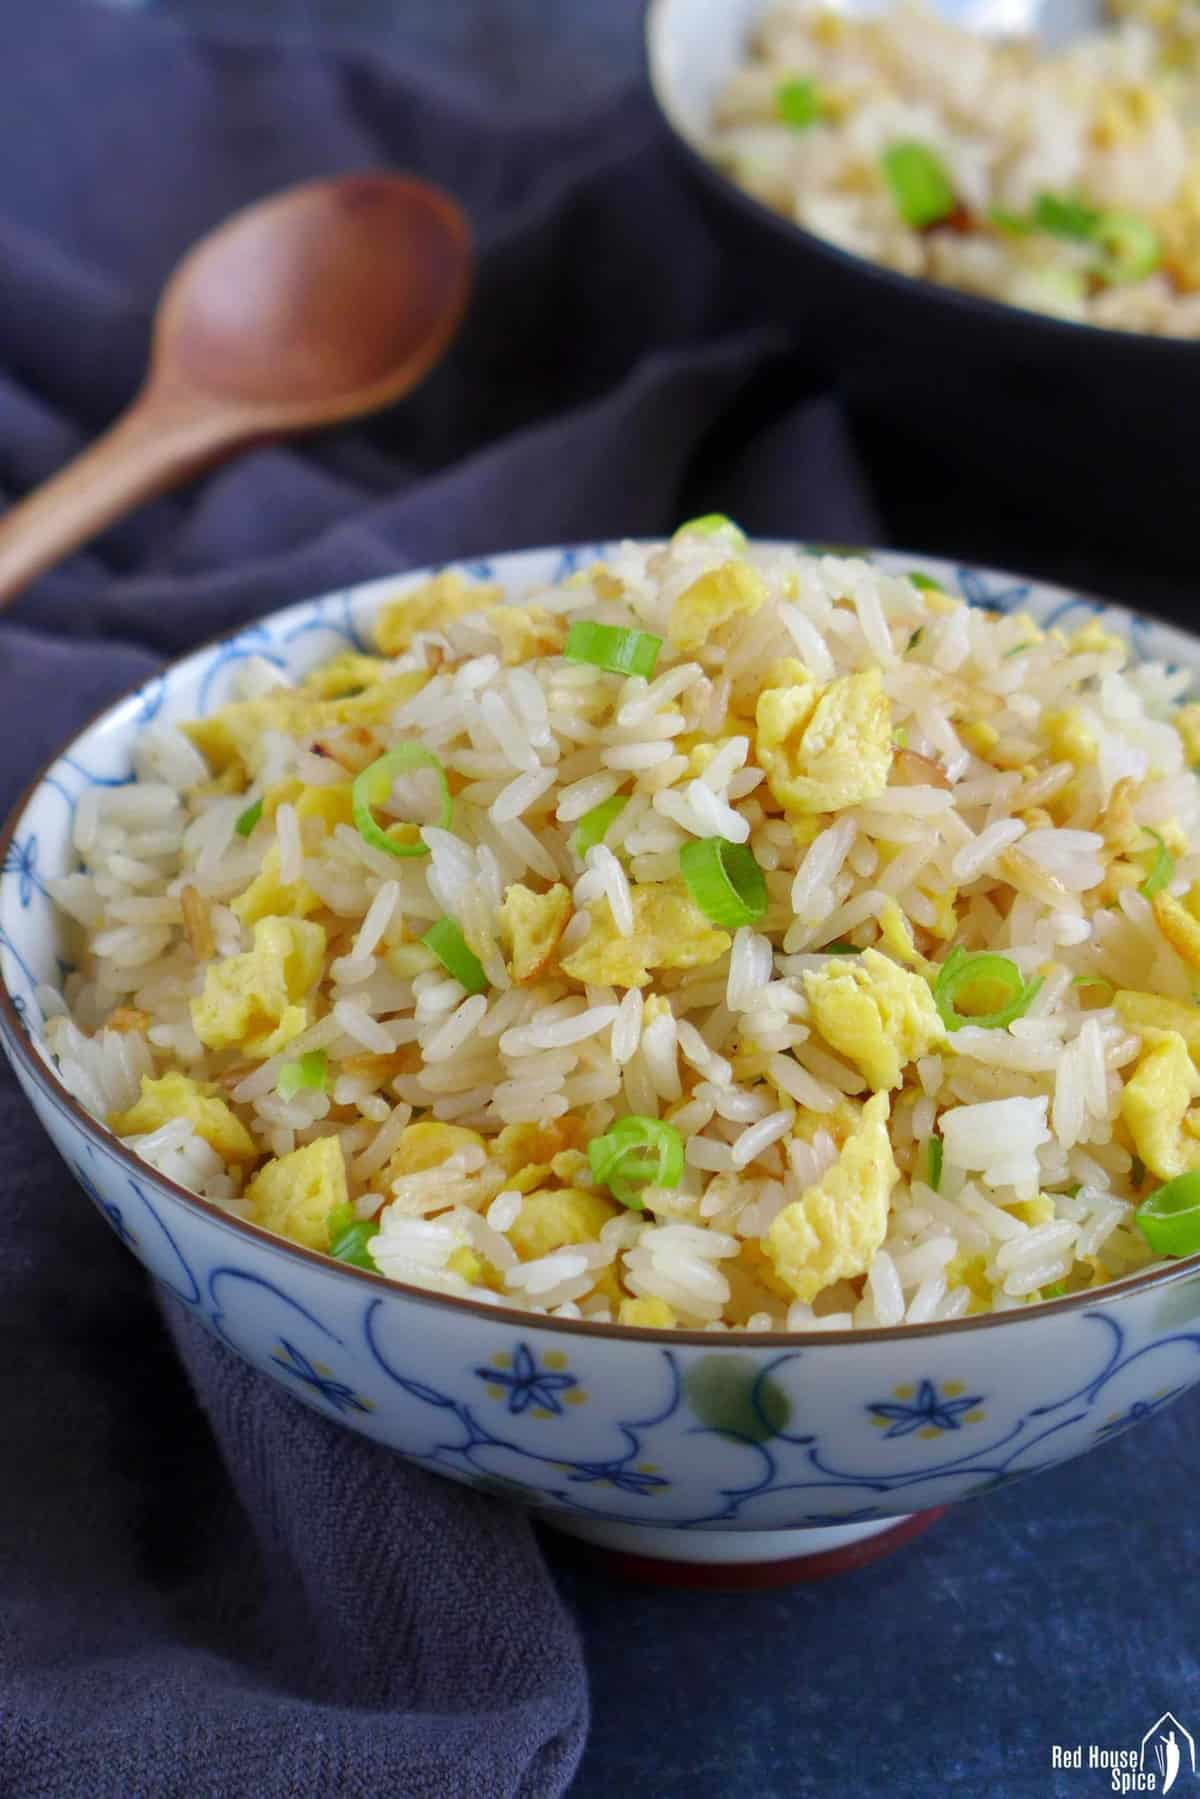 A bowl of Chinese egg fried rice.